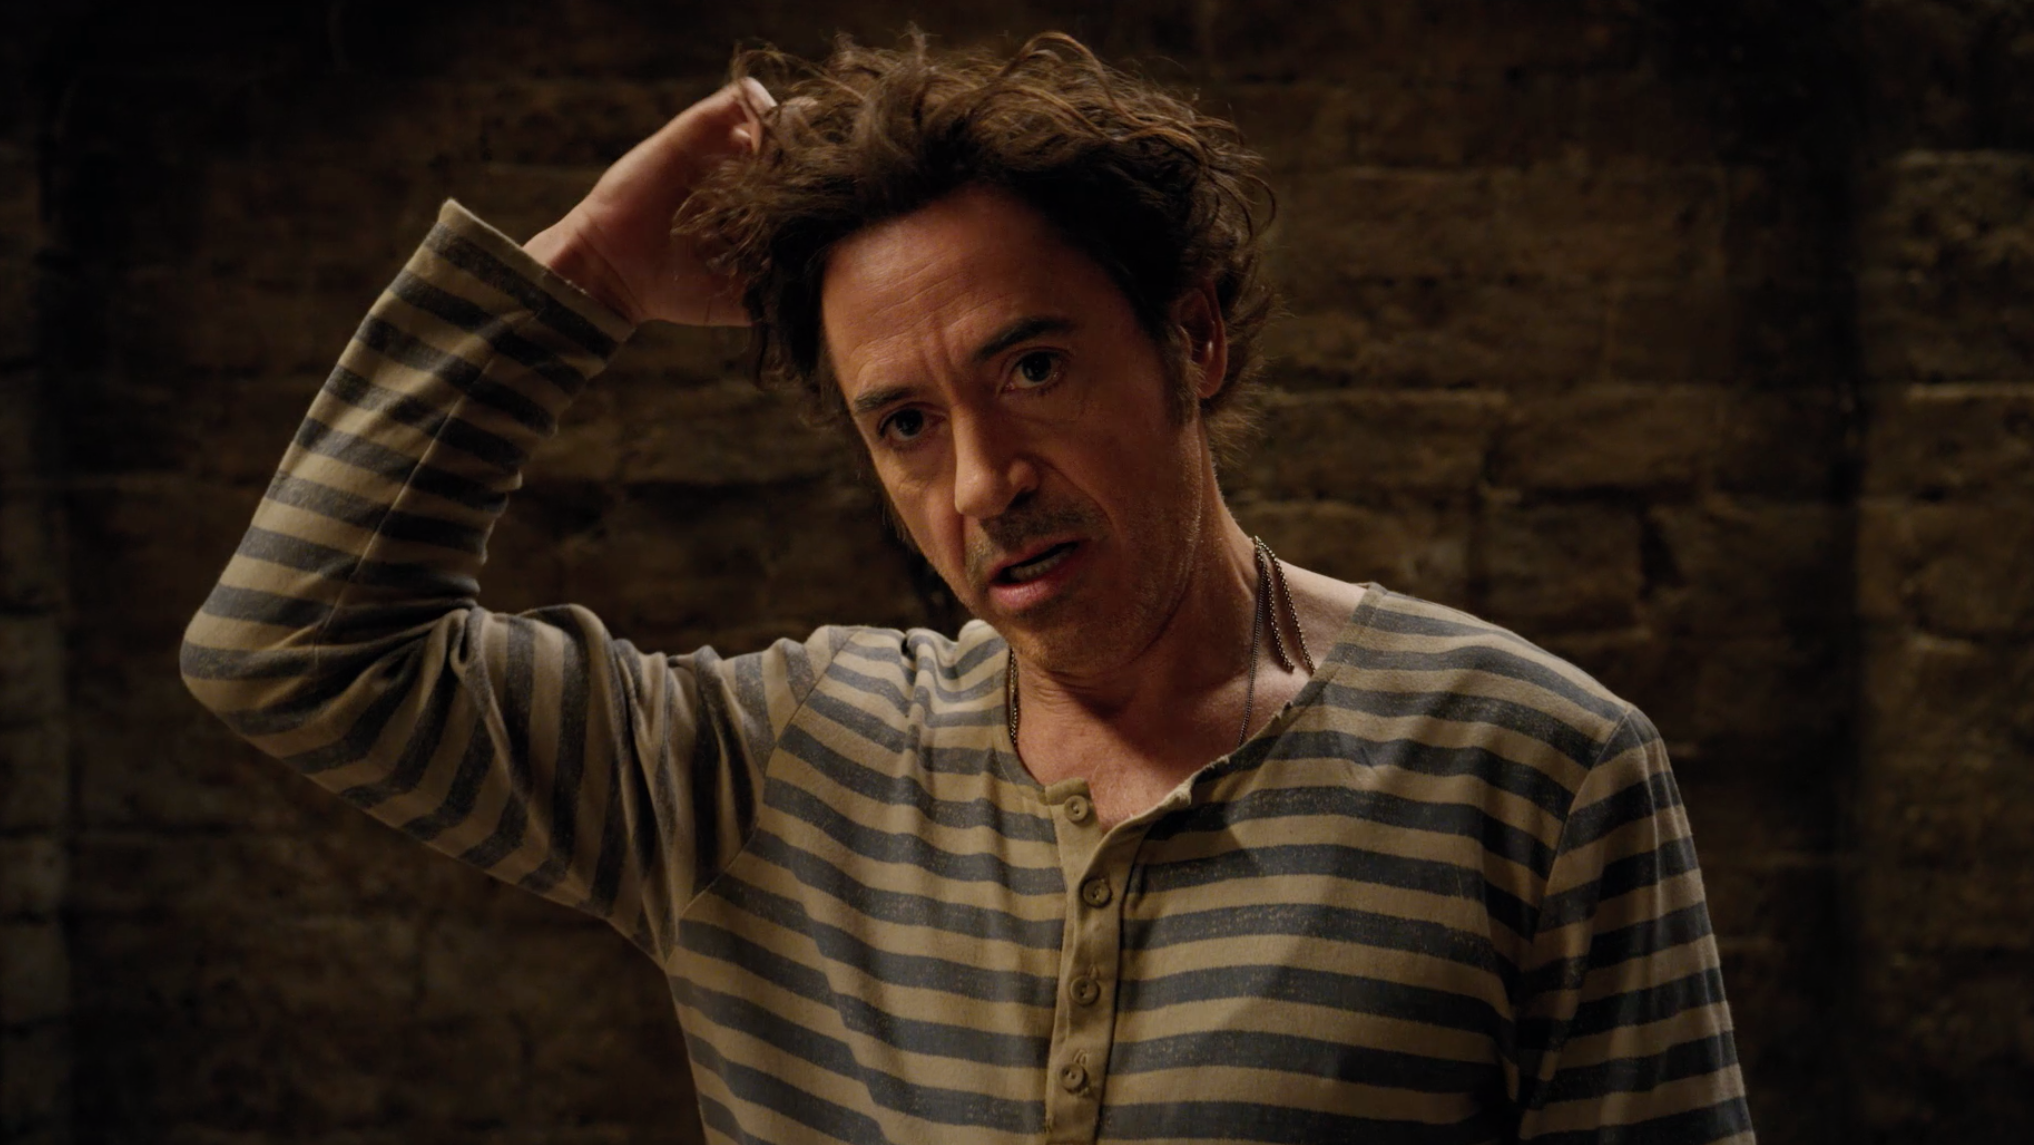 Robert Downey Jr. electrifies one of literature's most enduring characters in a vivid reimagining of the classic tale of the man who could talk to animals: Dolittle. After losing his wife seven years earlier, the eccentric Dr. John Dolittle (Downey), famed doctor and veterinarian of Queen Victoria's England, hermits himself away behind the high walls of Dolittle Manor with only his menagerie of exotic animals for company. But when the young queen (Jessie Buckley, Wild Rose) falls gravely ill, a reluctant Dolittle is forced to set sail on an epic adventure to a mythical island in search of a cure, regaining his wit and courage as he crosses old adversaries and discovers wondrous creatures. The doctor is joined on his quest by a young, self-appointed apprentice (Dunkirk's Harry Collett) and a raucous coterie of animal friends, including an anxious gorilla (Oscar® winner Rami Malek), an enthusiastic but bird-brained duck (Oscar® winner Octavia Spencer), a bickering duo of a cynical ostrich (The Big Sick's Kumail Nanjiani) and an upbeat polar bear (John Cena, Bumblebee) and a headstrong parrot (Oscar® winner Emma Thompson), who serves as Dolittle's most trusted advisor and confidante. The film also stars Antonio Banderas, Michael Sheen (The Queen) and Oscar® winner Jim Broadbent and features additional voice performances from Oscar® winner Marion Cotillard, Frances de la Tour, Carmen Ejogo, Ralph Fiennes, Selena Gomez, Tom Holland, and Craig Robinson. Directed by Academy Award® winner Stephen Gaghan (Syriana, Traffic), Dolittle is produced by Joe Roth and Jeff Kirschenbaum under their Roth/Kirschenbaum Films (Alice in Wonderland, Maleficent) and Susan Downey (Sherlock Holmes franchise, The Judge) for Team Downey. The film is executive produced by Robert Downey Jr., Sarah Bradshaw (The Mummy, Maleficent) and Zachary Roth (Maleficent: Mistress of Evil). Dolittle is in cinemas February 2020.